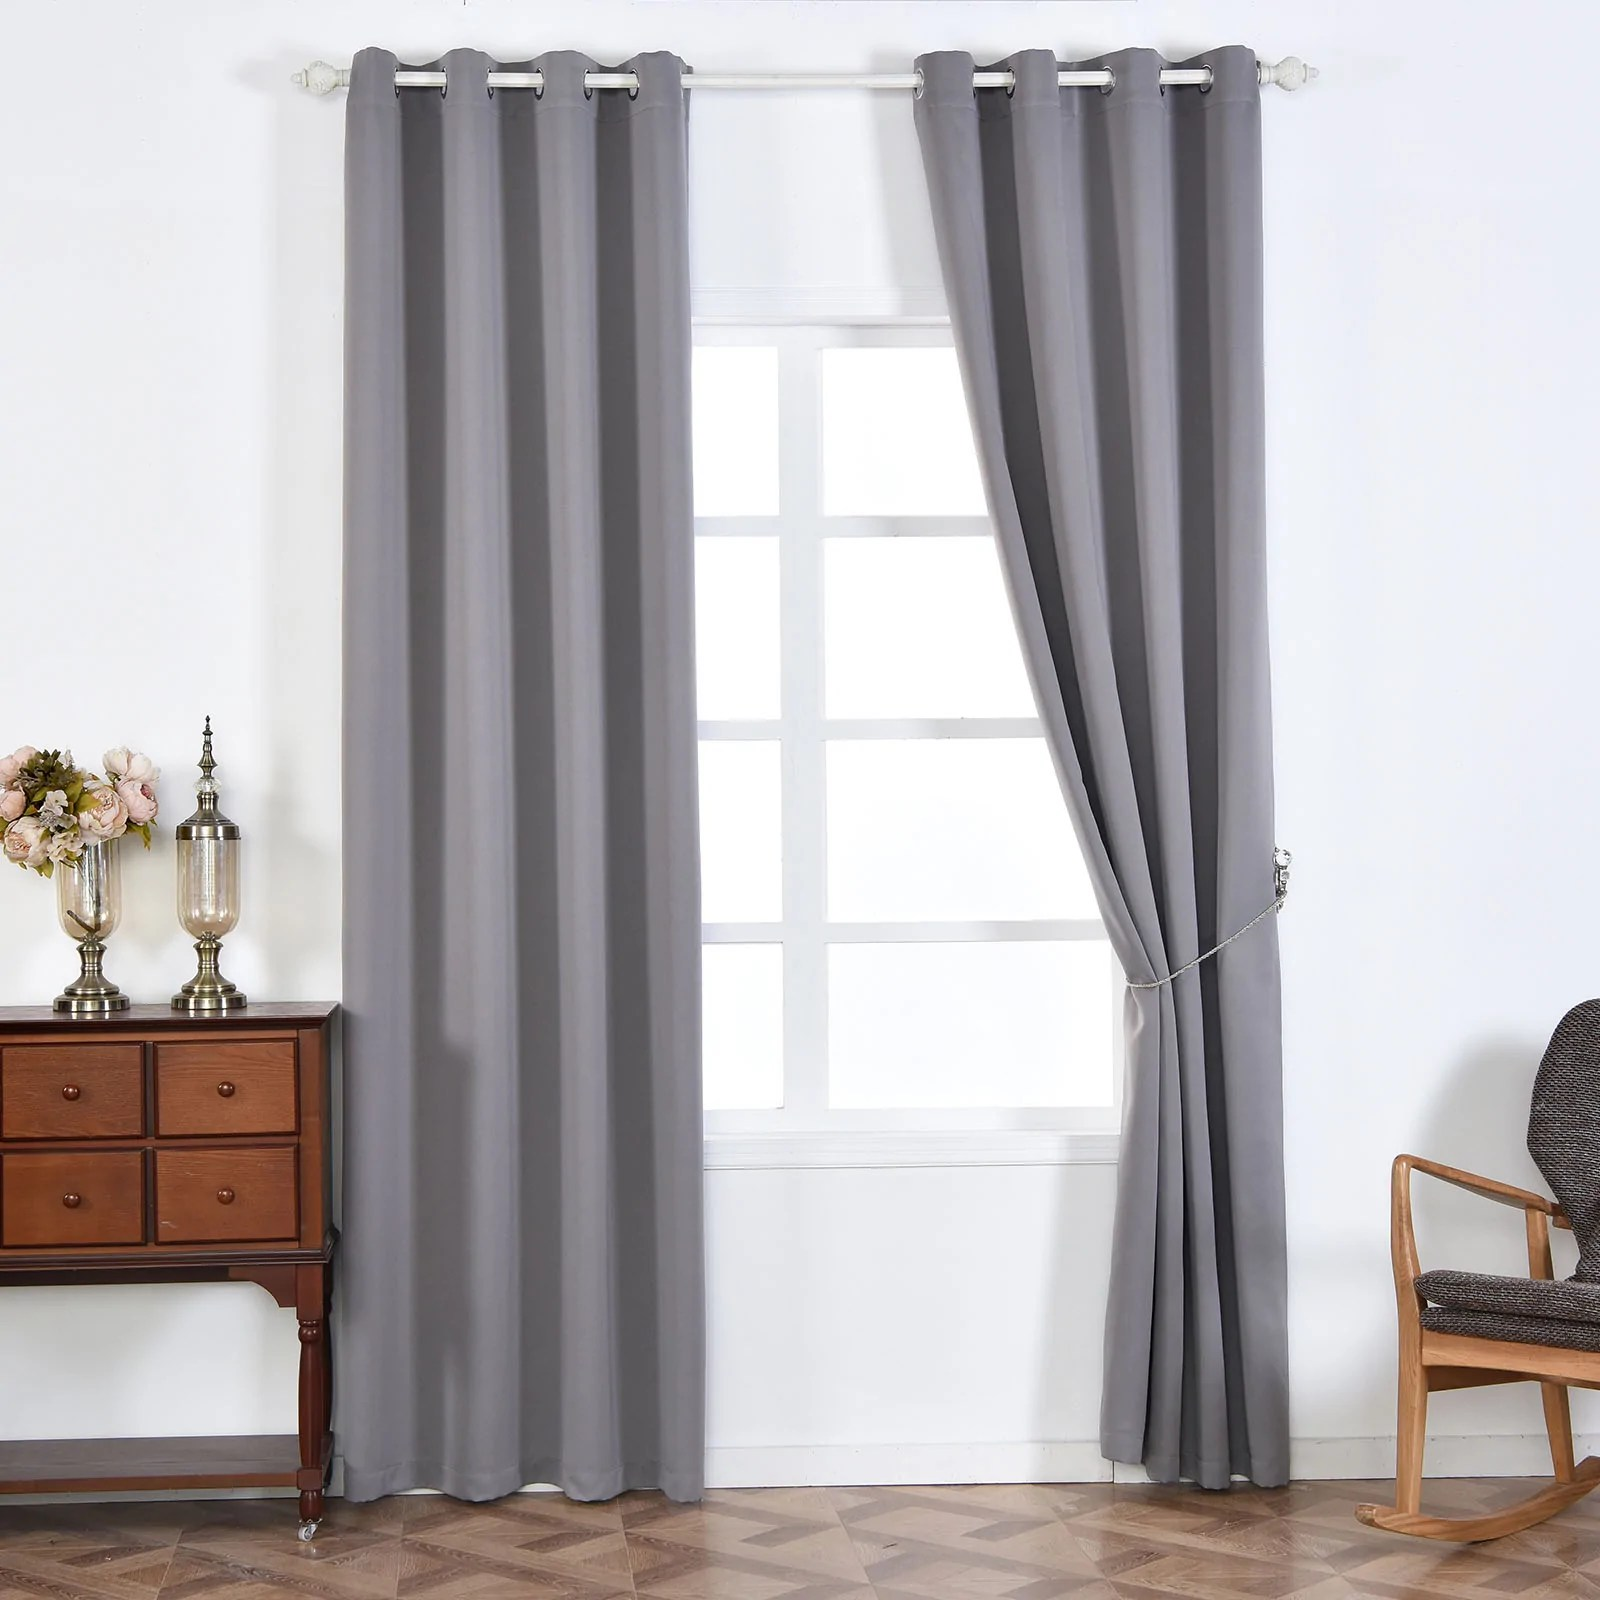 Grey Thermal Curtains 2 Pack 52